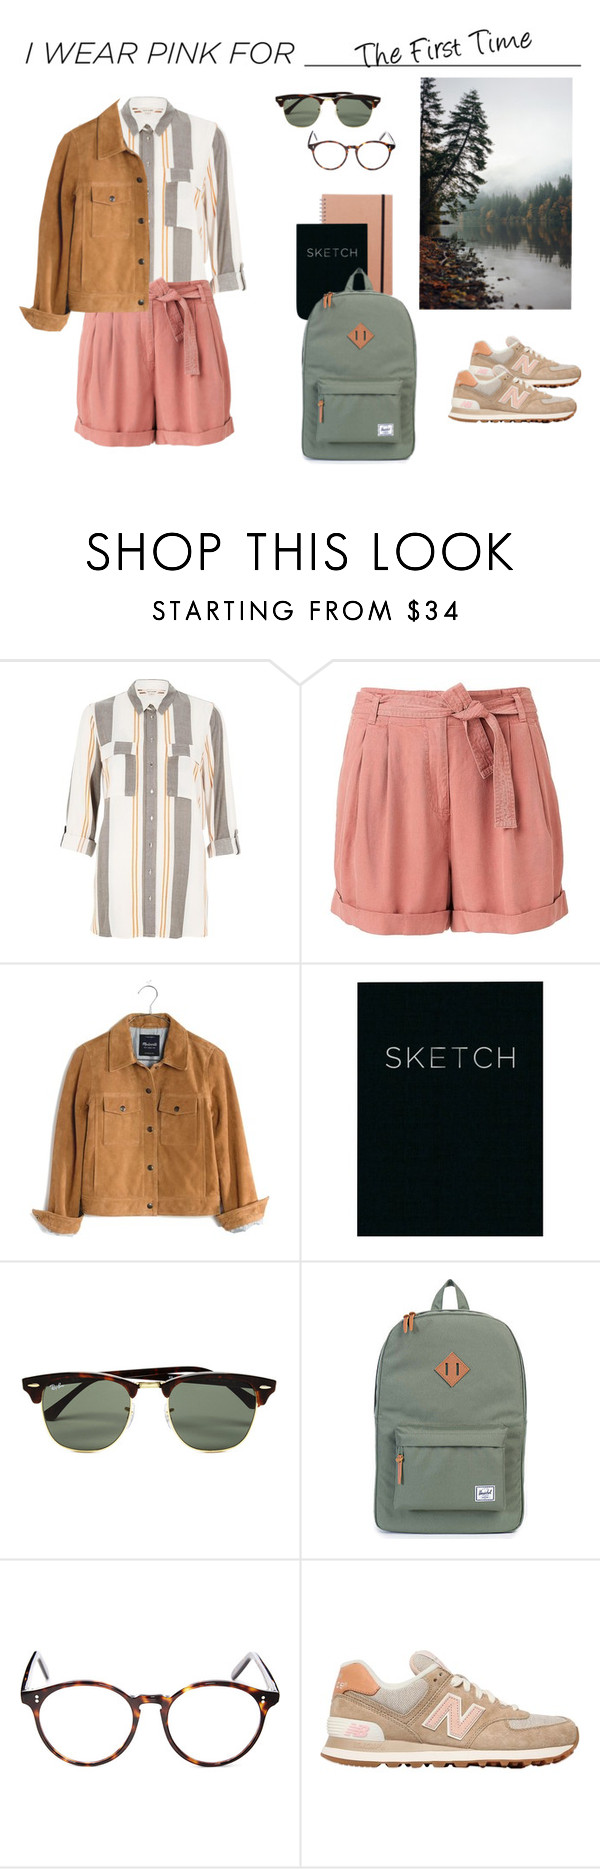 """""""Pink for excursion"""" by anataliaf ❤ liked on Polyvore featuring River Island, Witchery, Madewell, Ray-Ban, Herschel Supply Co., Cutler and Gross, New Balance and country"""